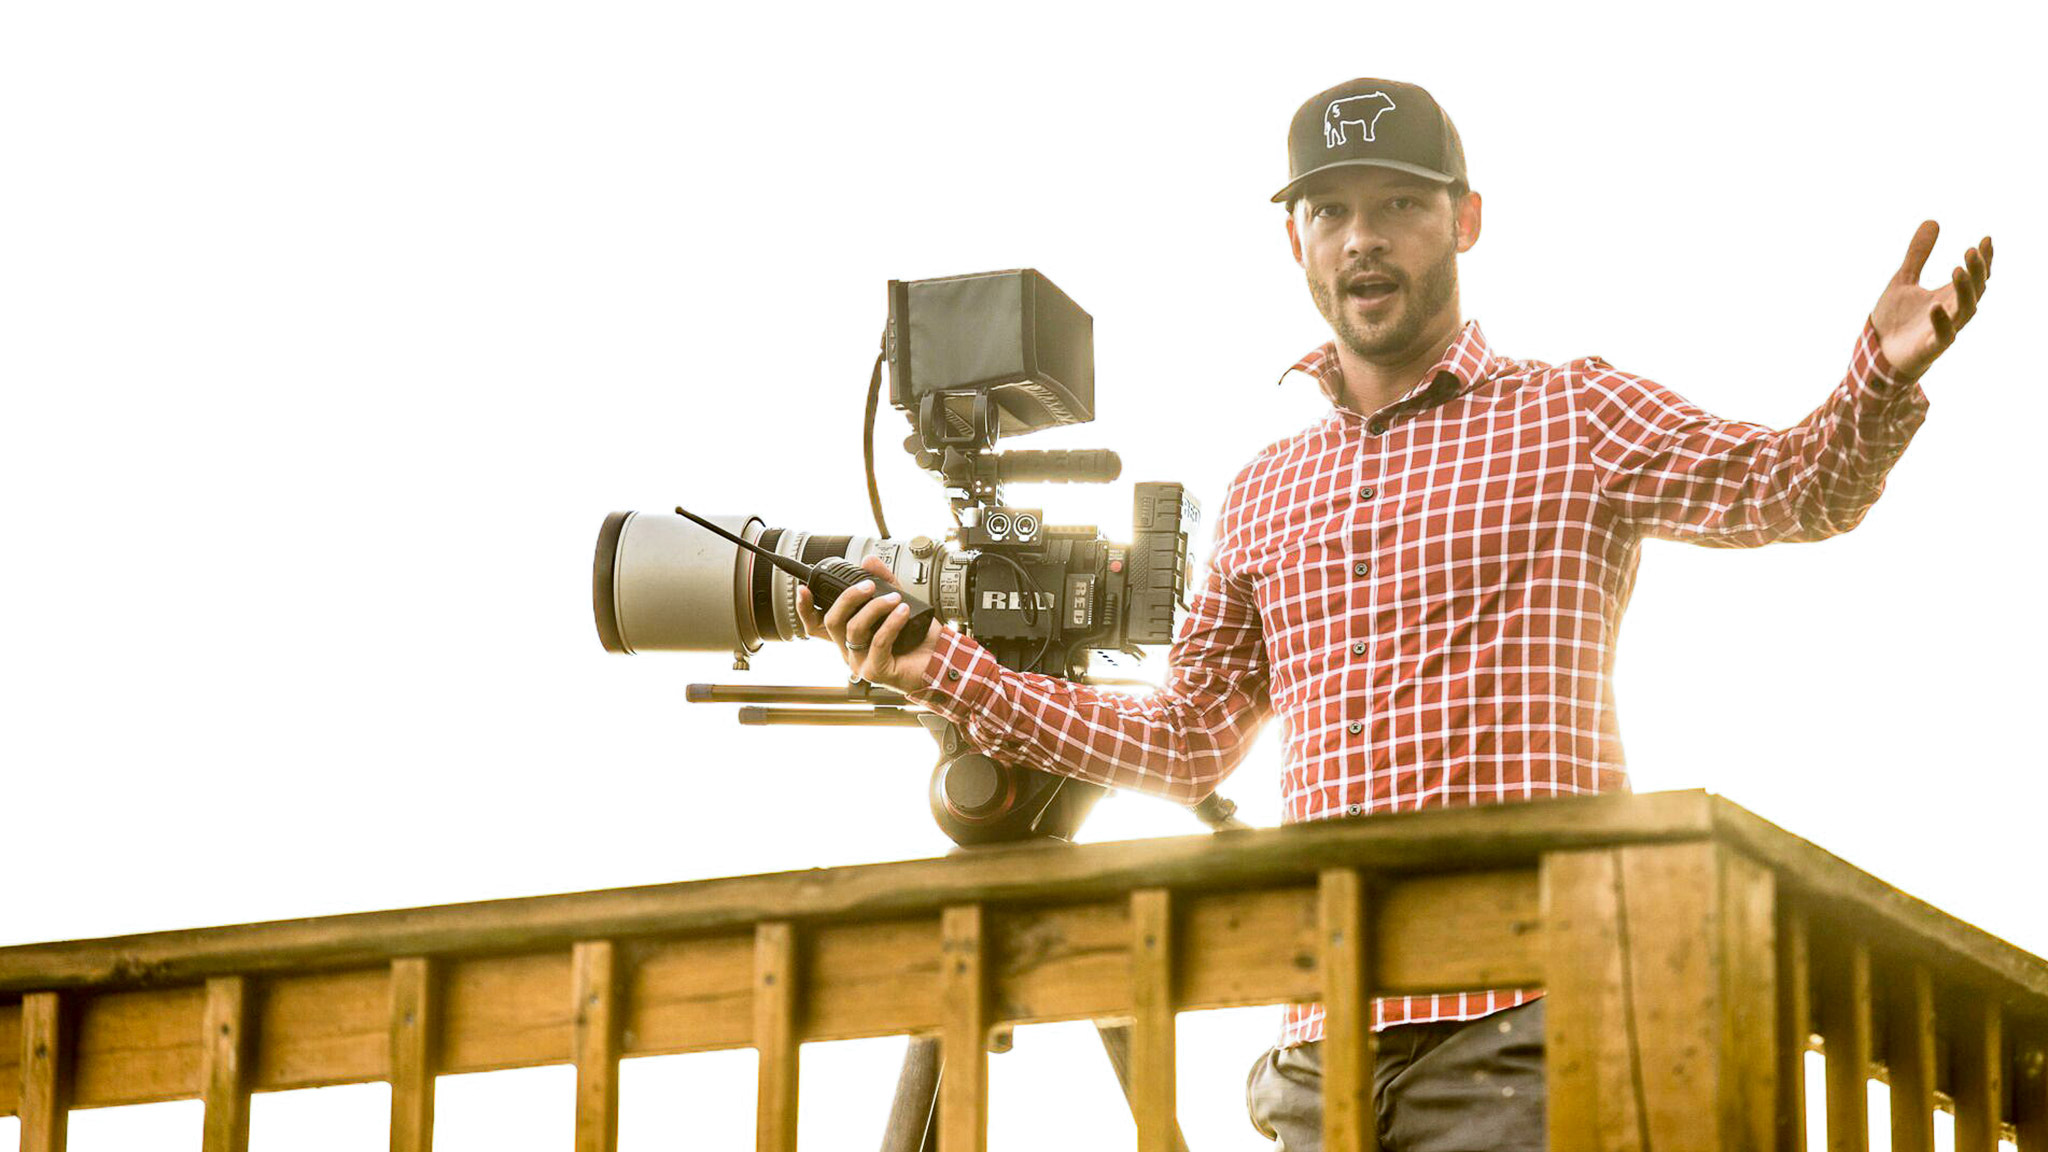 Lafferty's filmer: Wes Williams